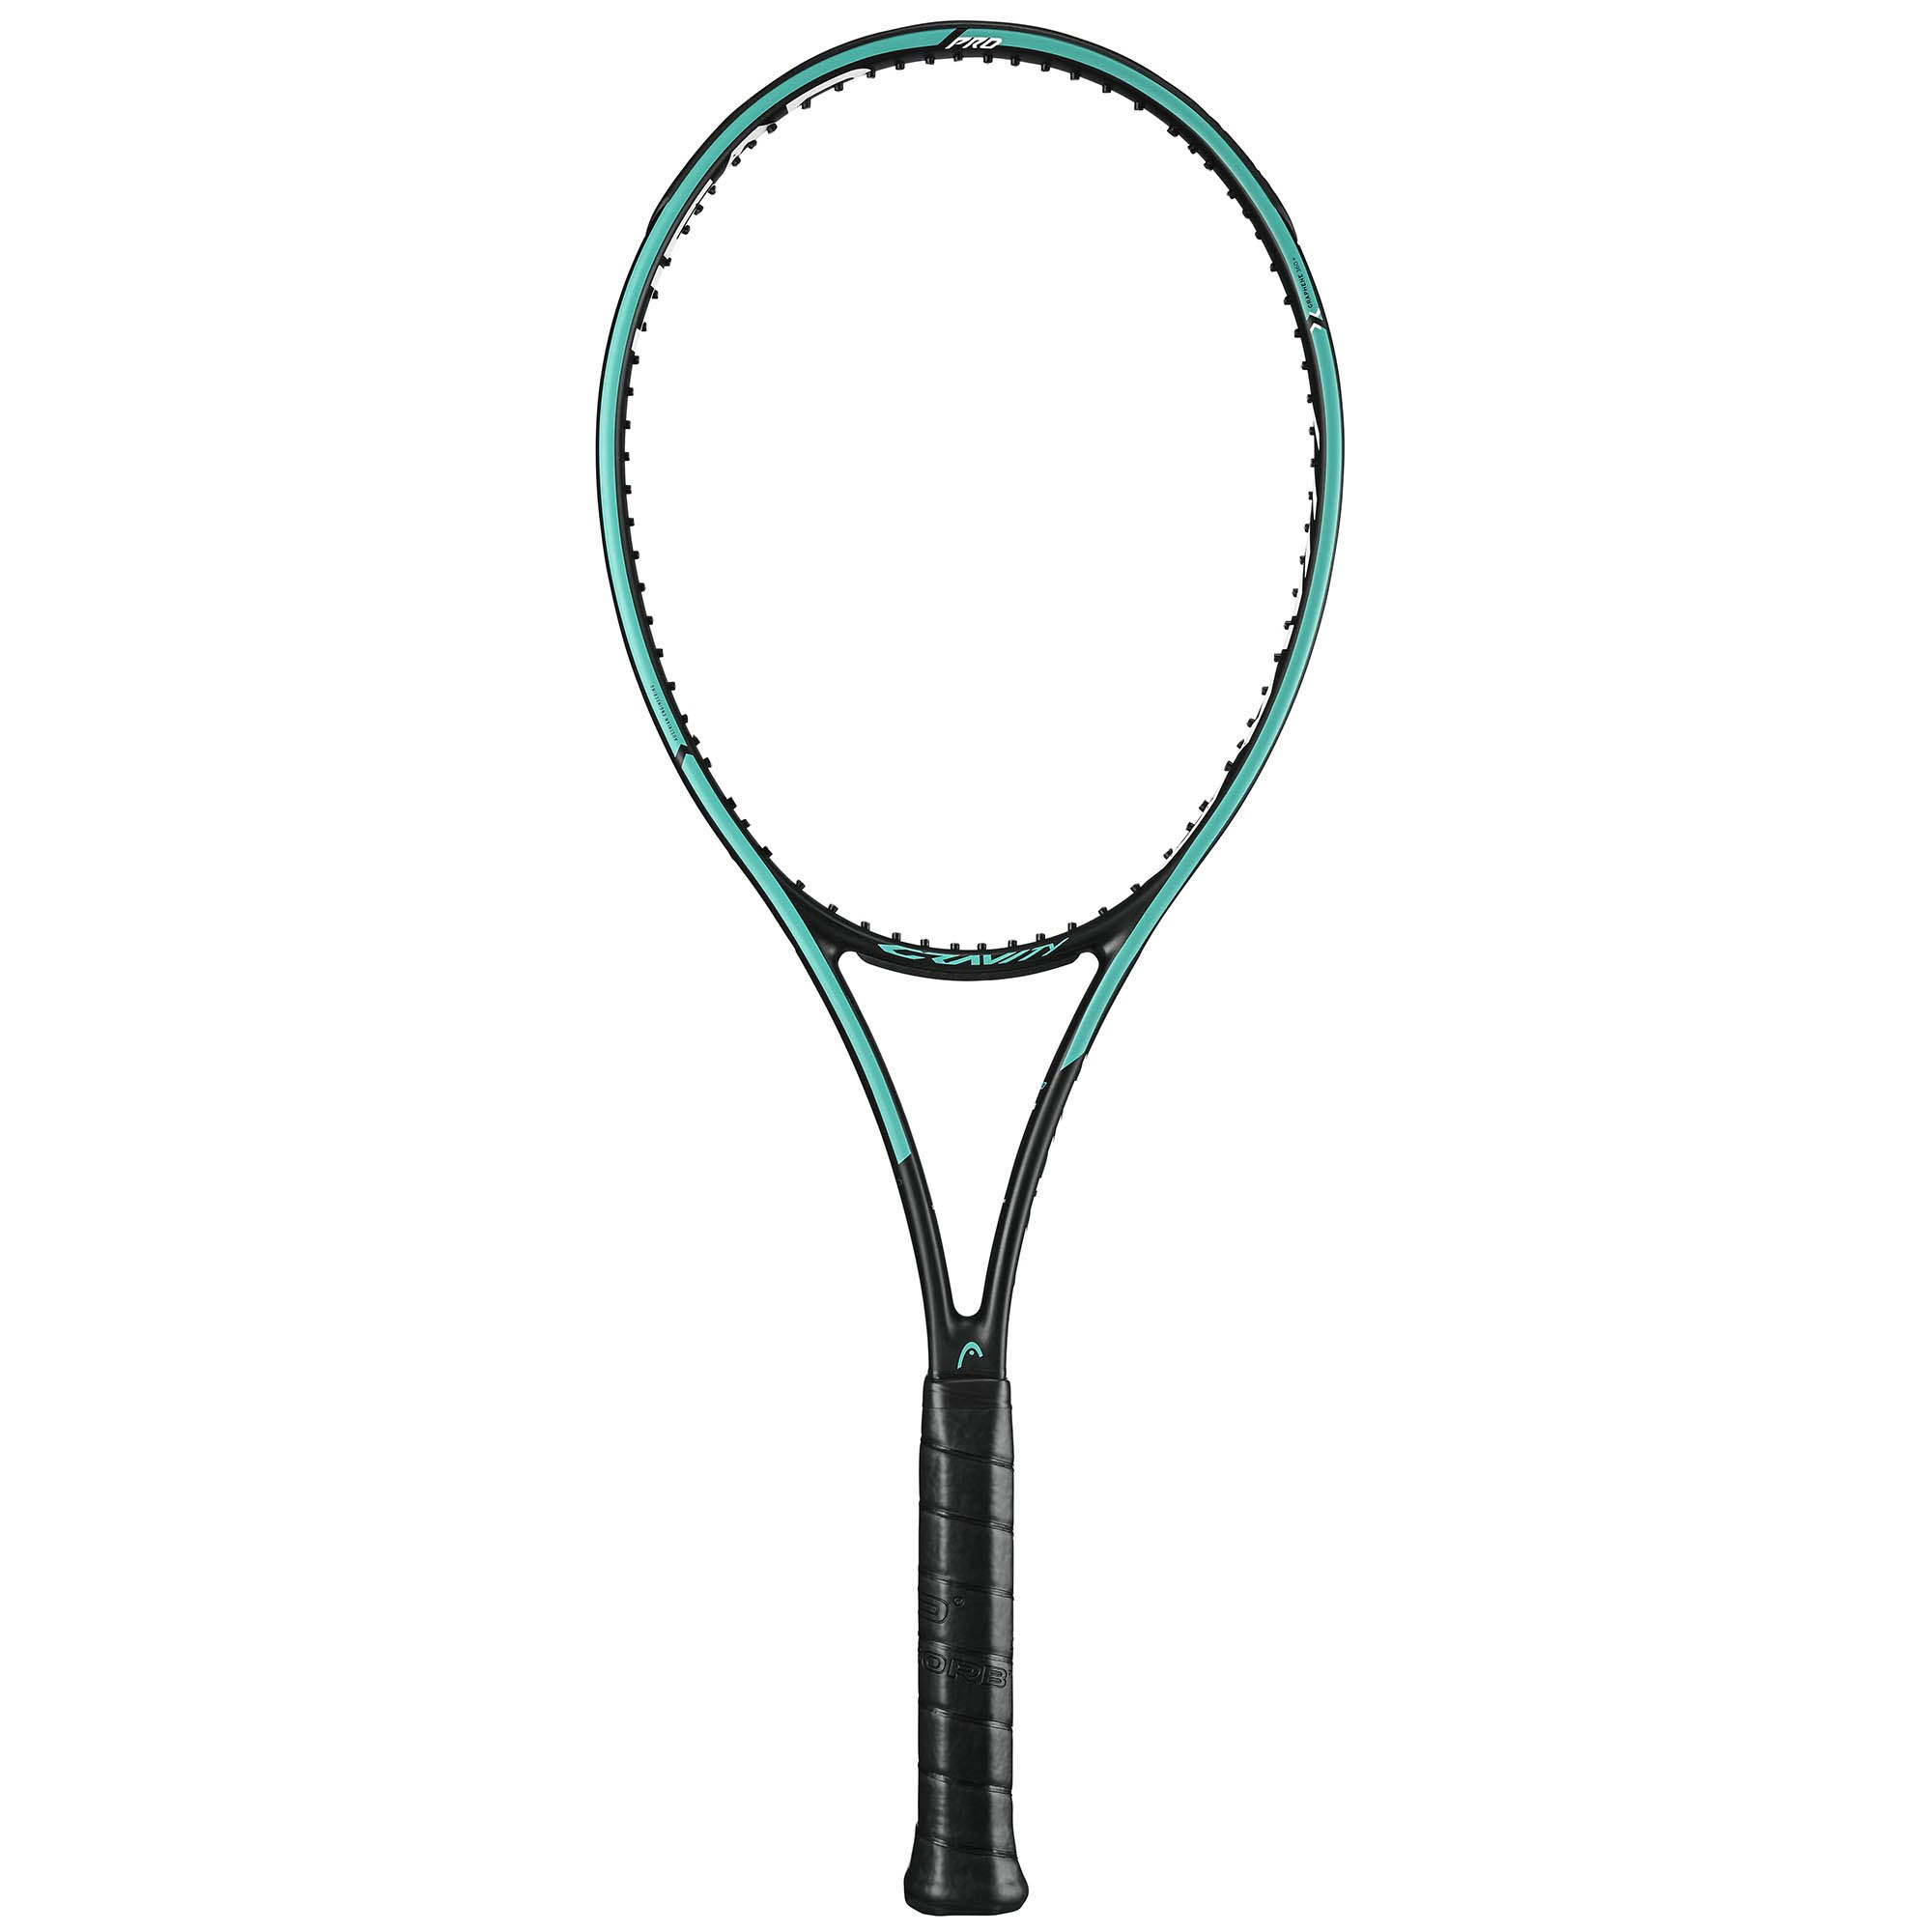 Head Graphene 360+ Gravity Pro Tennis Racket – Grip 2